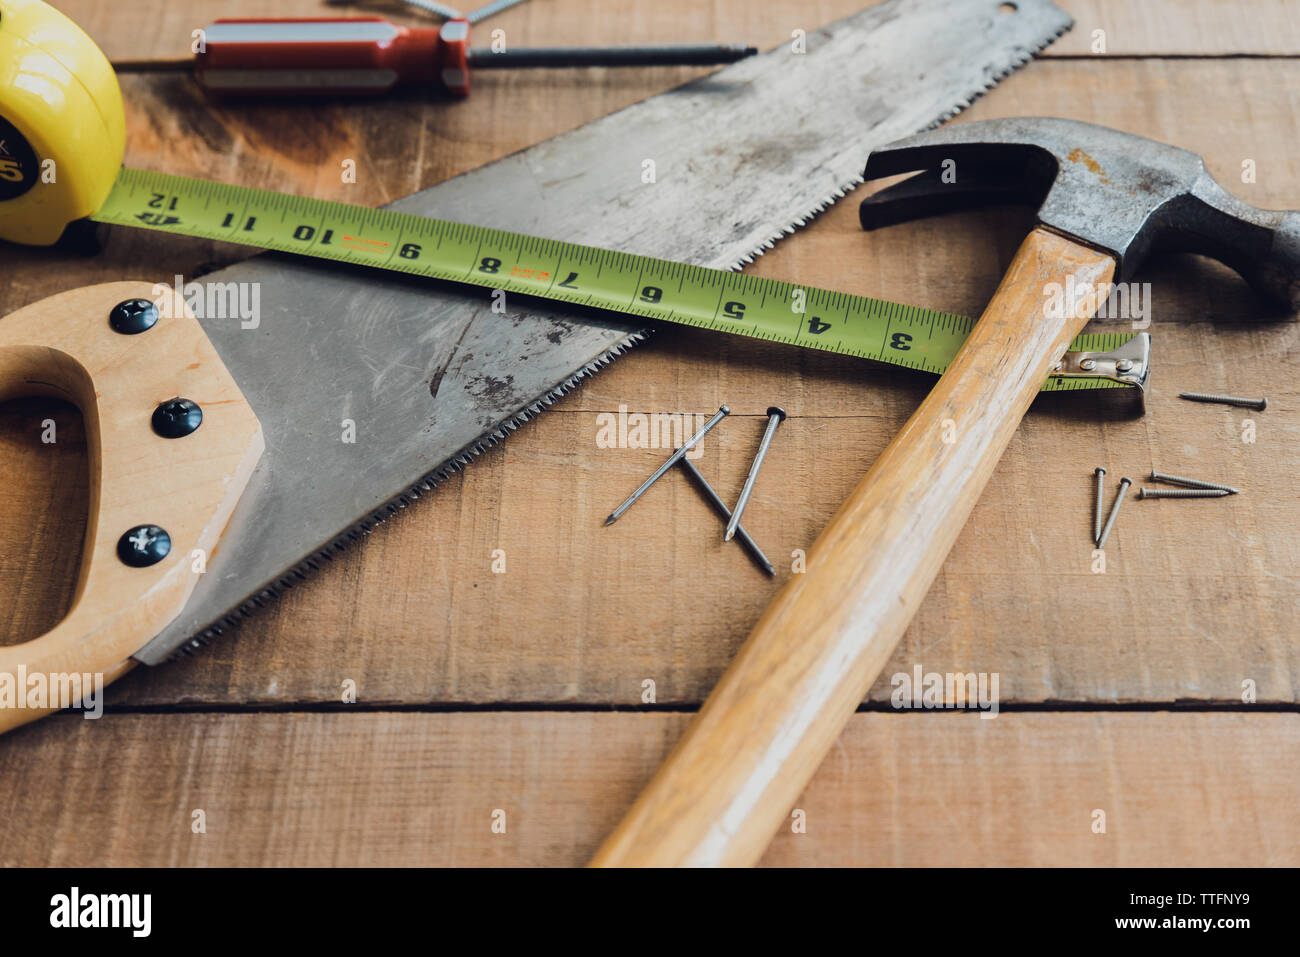 Woodworking Tools Stock Photos Woodworking Tools Stock